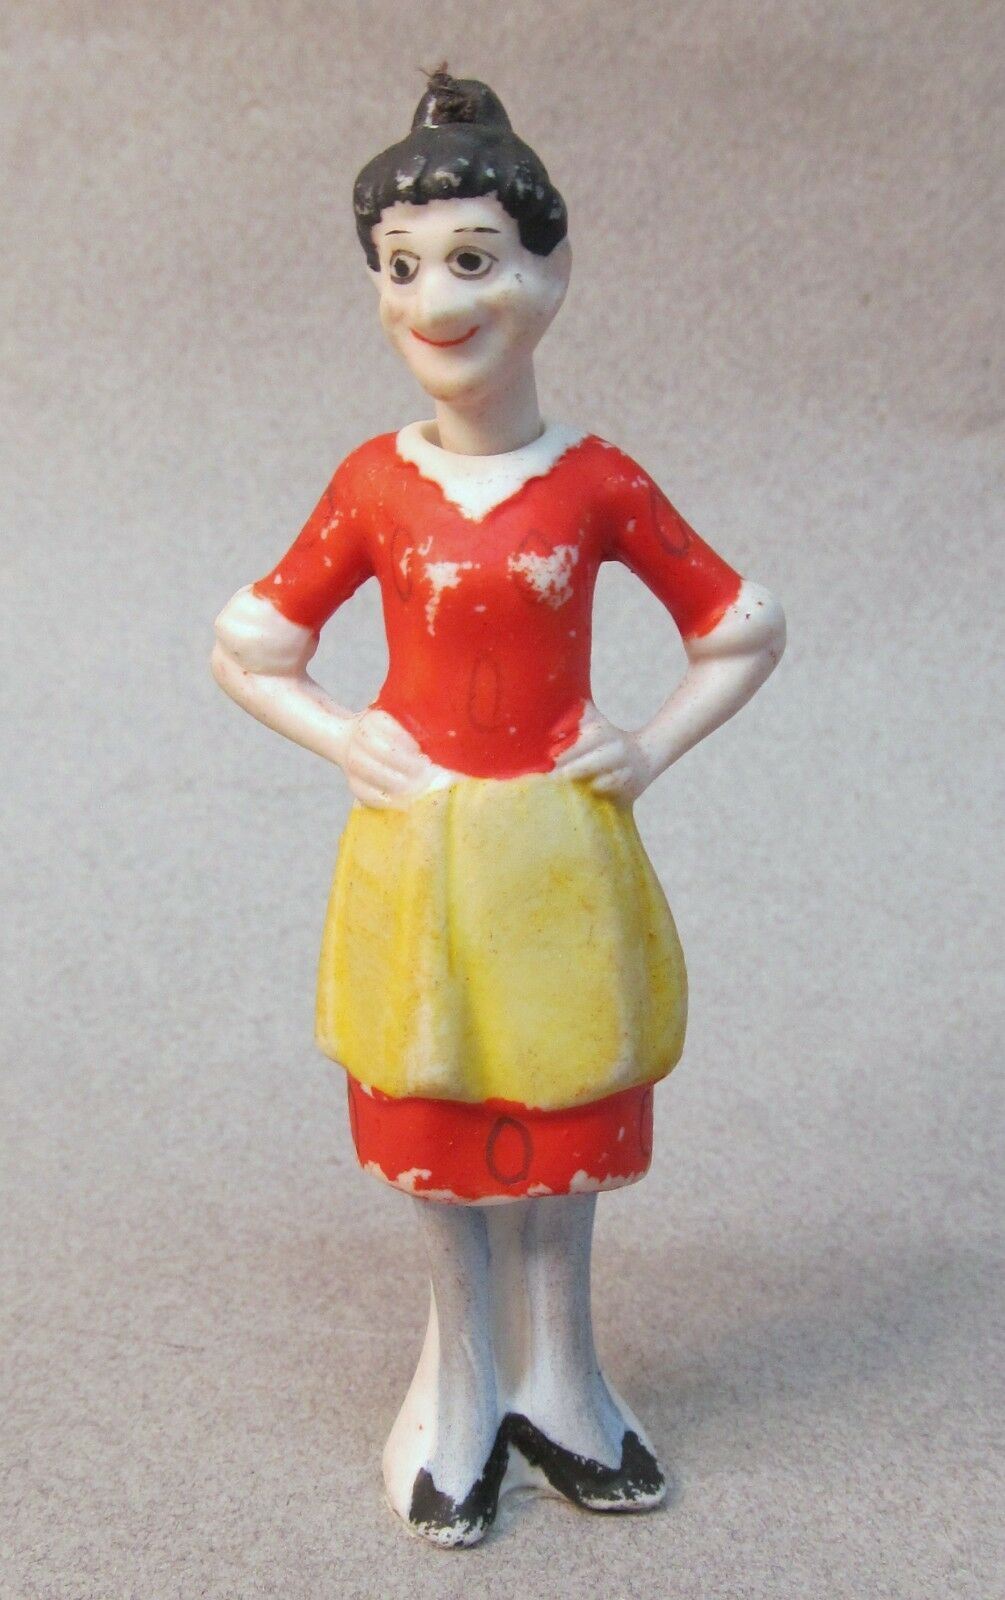 EMMY 1930's Moon Mullins comic strip character German nodder bisque figure 3.75